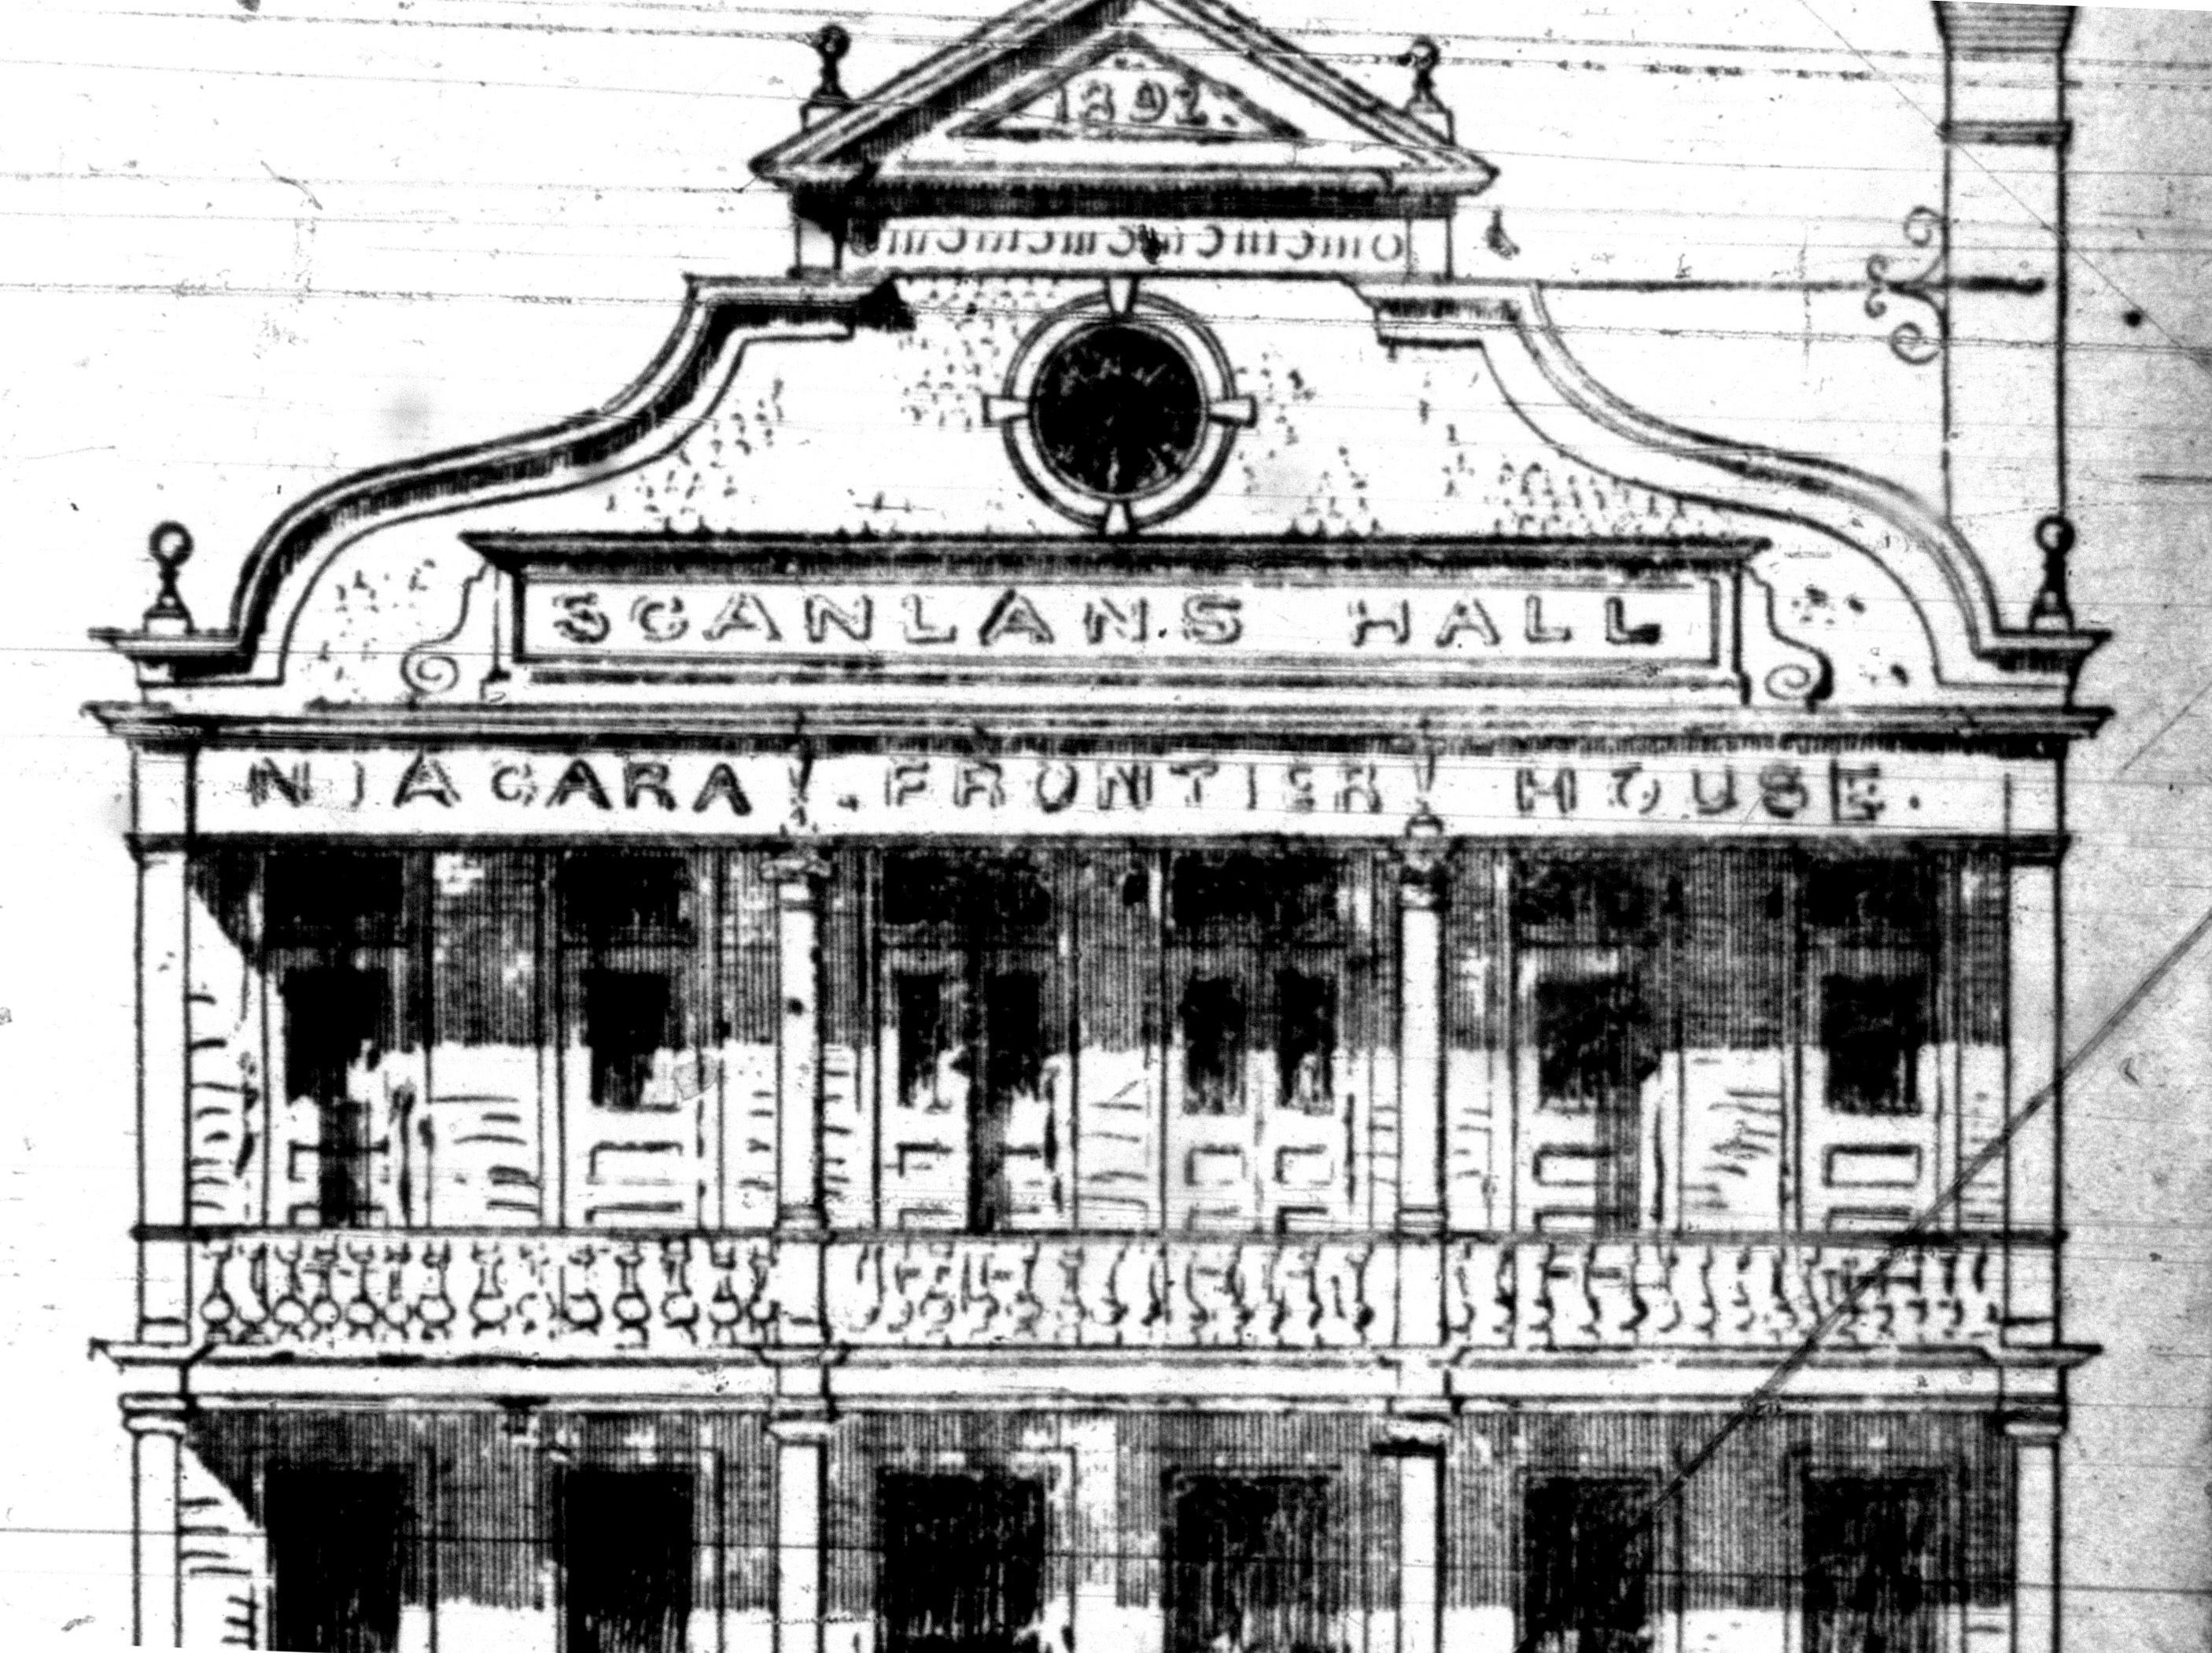 Scanlons Hall, detail top, illustration (1893-08-05 Tonawanda News).jpg